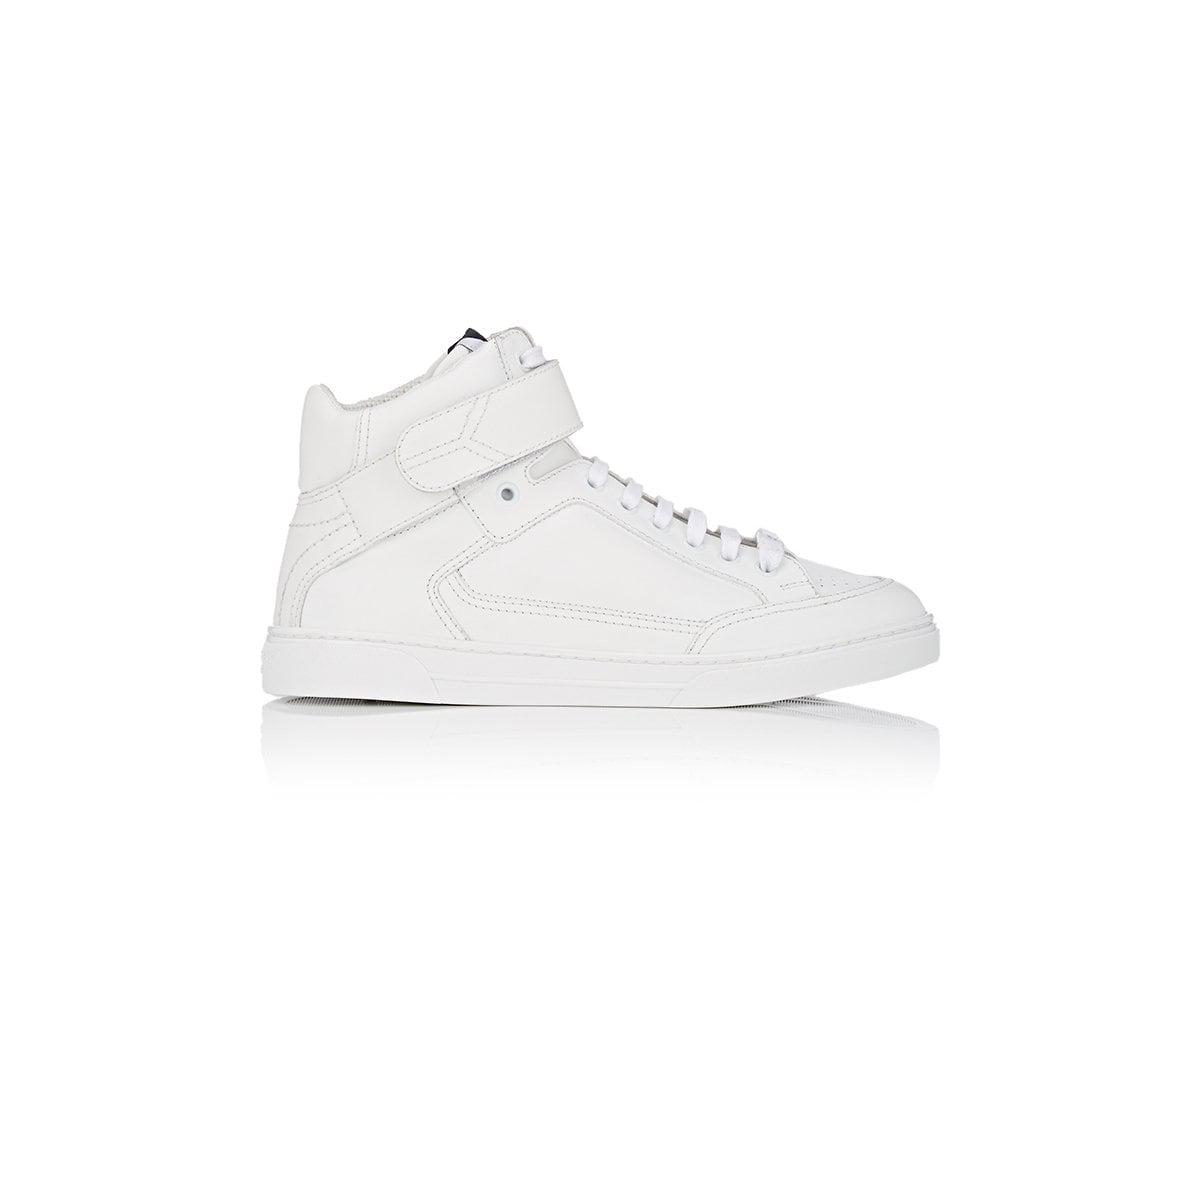 a5e0a9e7b67e3 Lyst - Saint Laurent Antibe Leather Sneakers in White